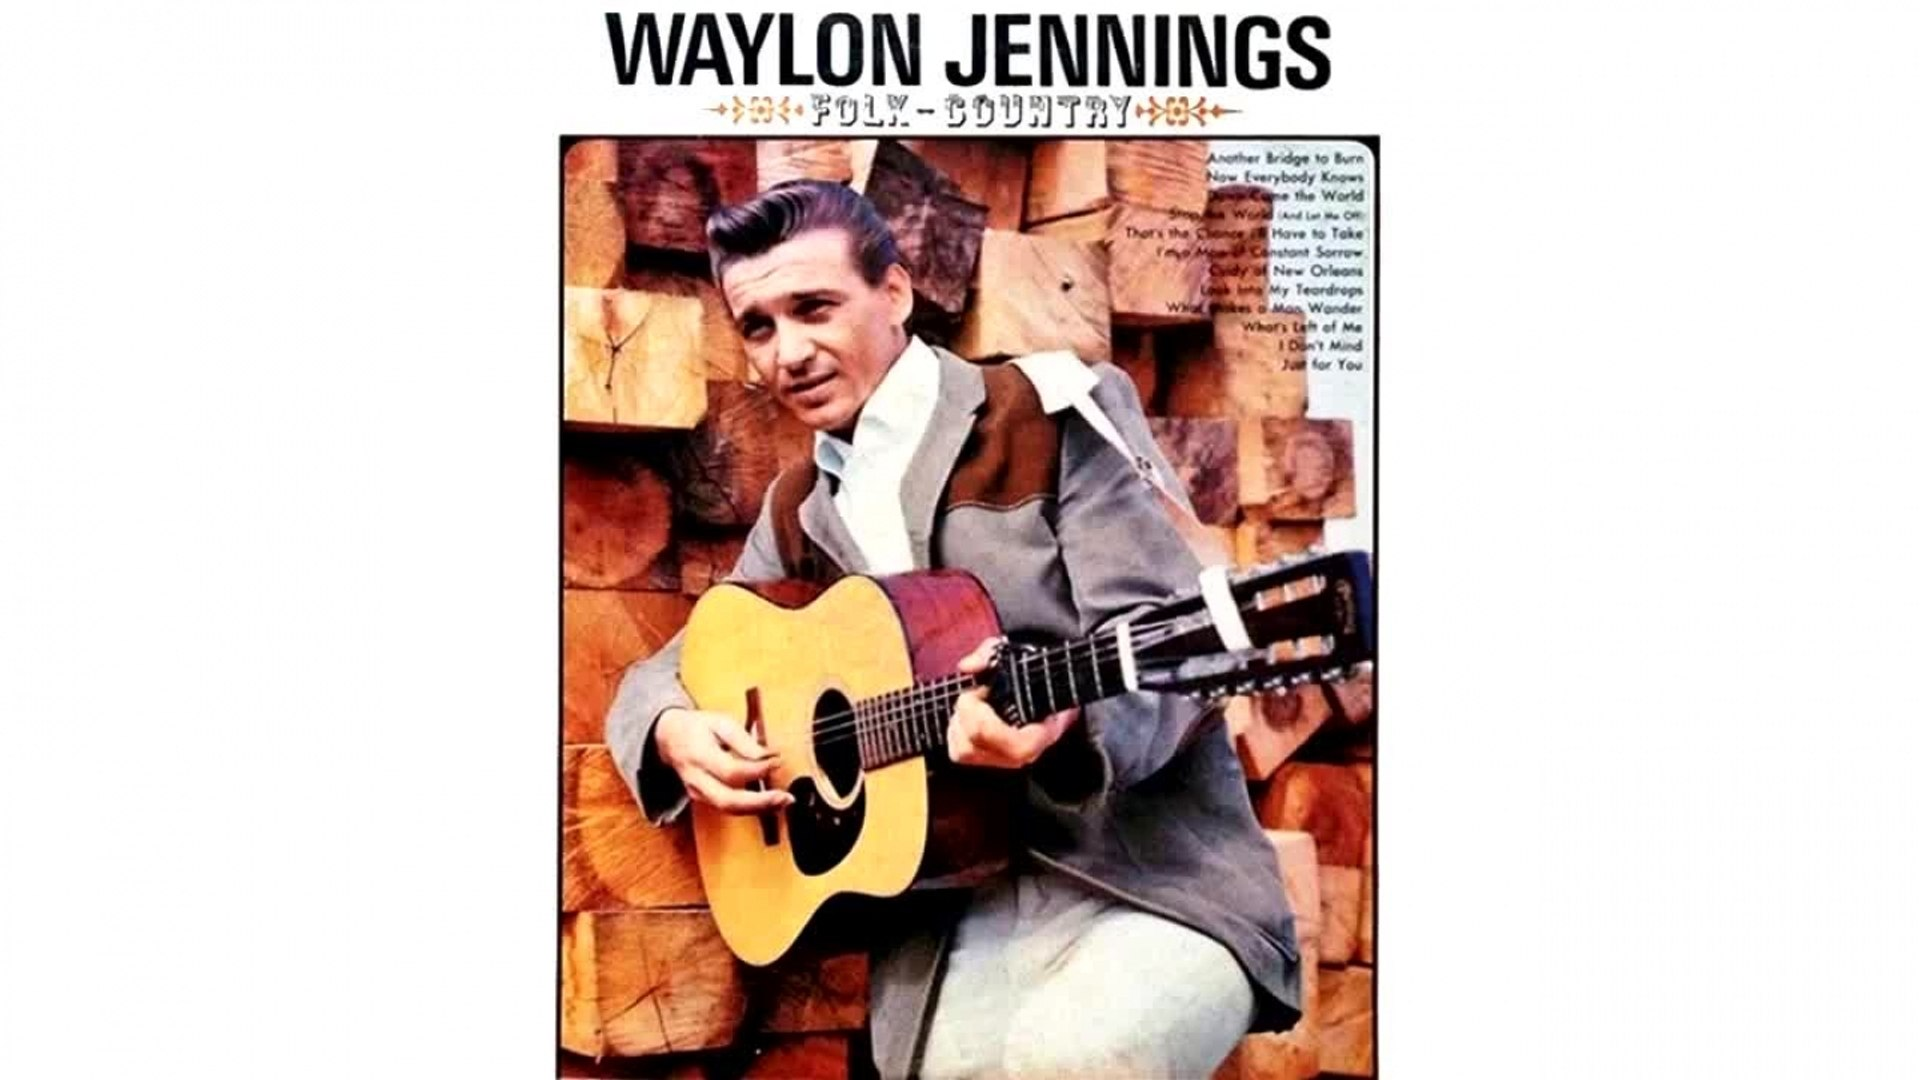 Waylon Jennings - That's the Chance I'll Have to Take - Vintage Music Songs